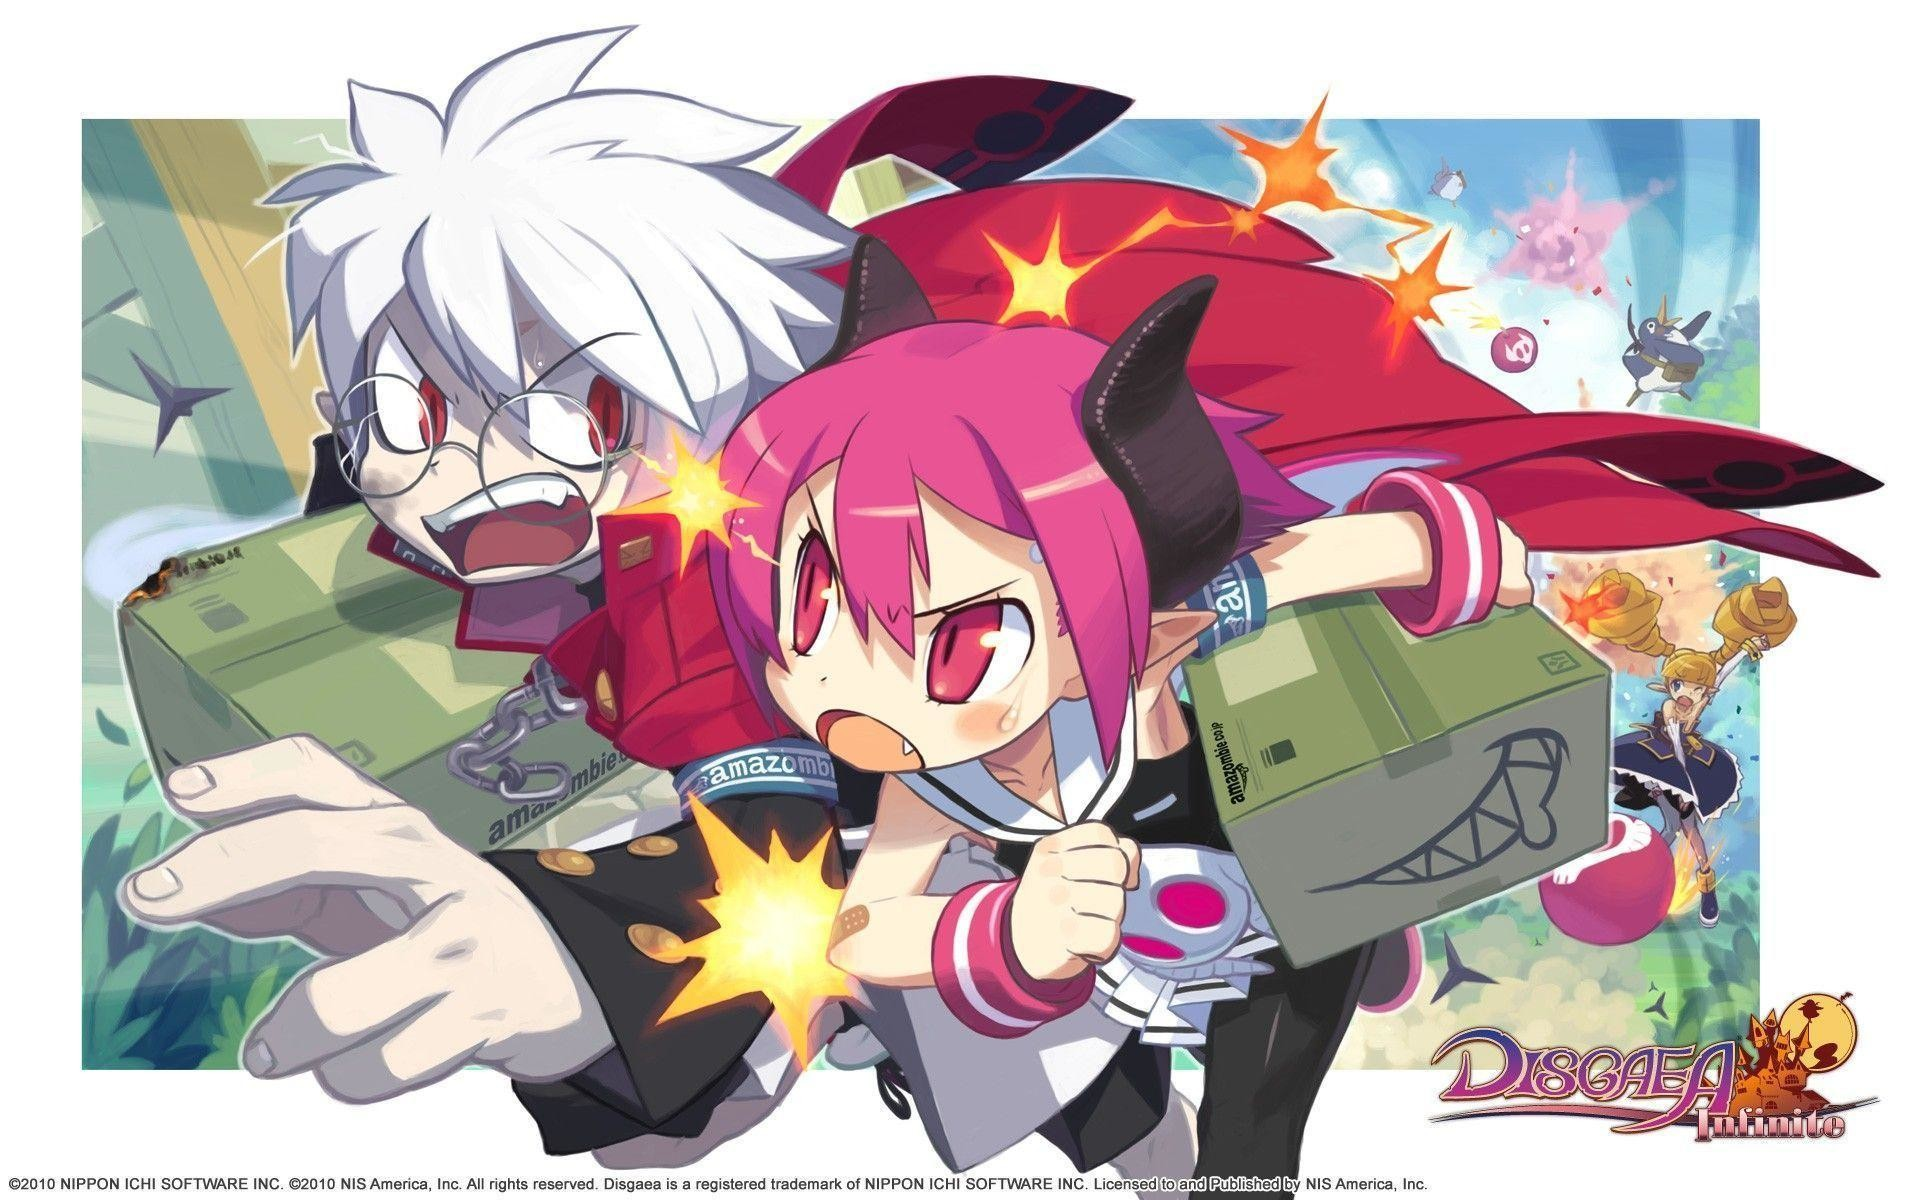 1920x1200 Download Disgaea Wallpaper  | Wallpoper #342710